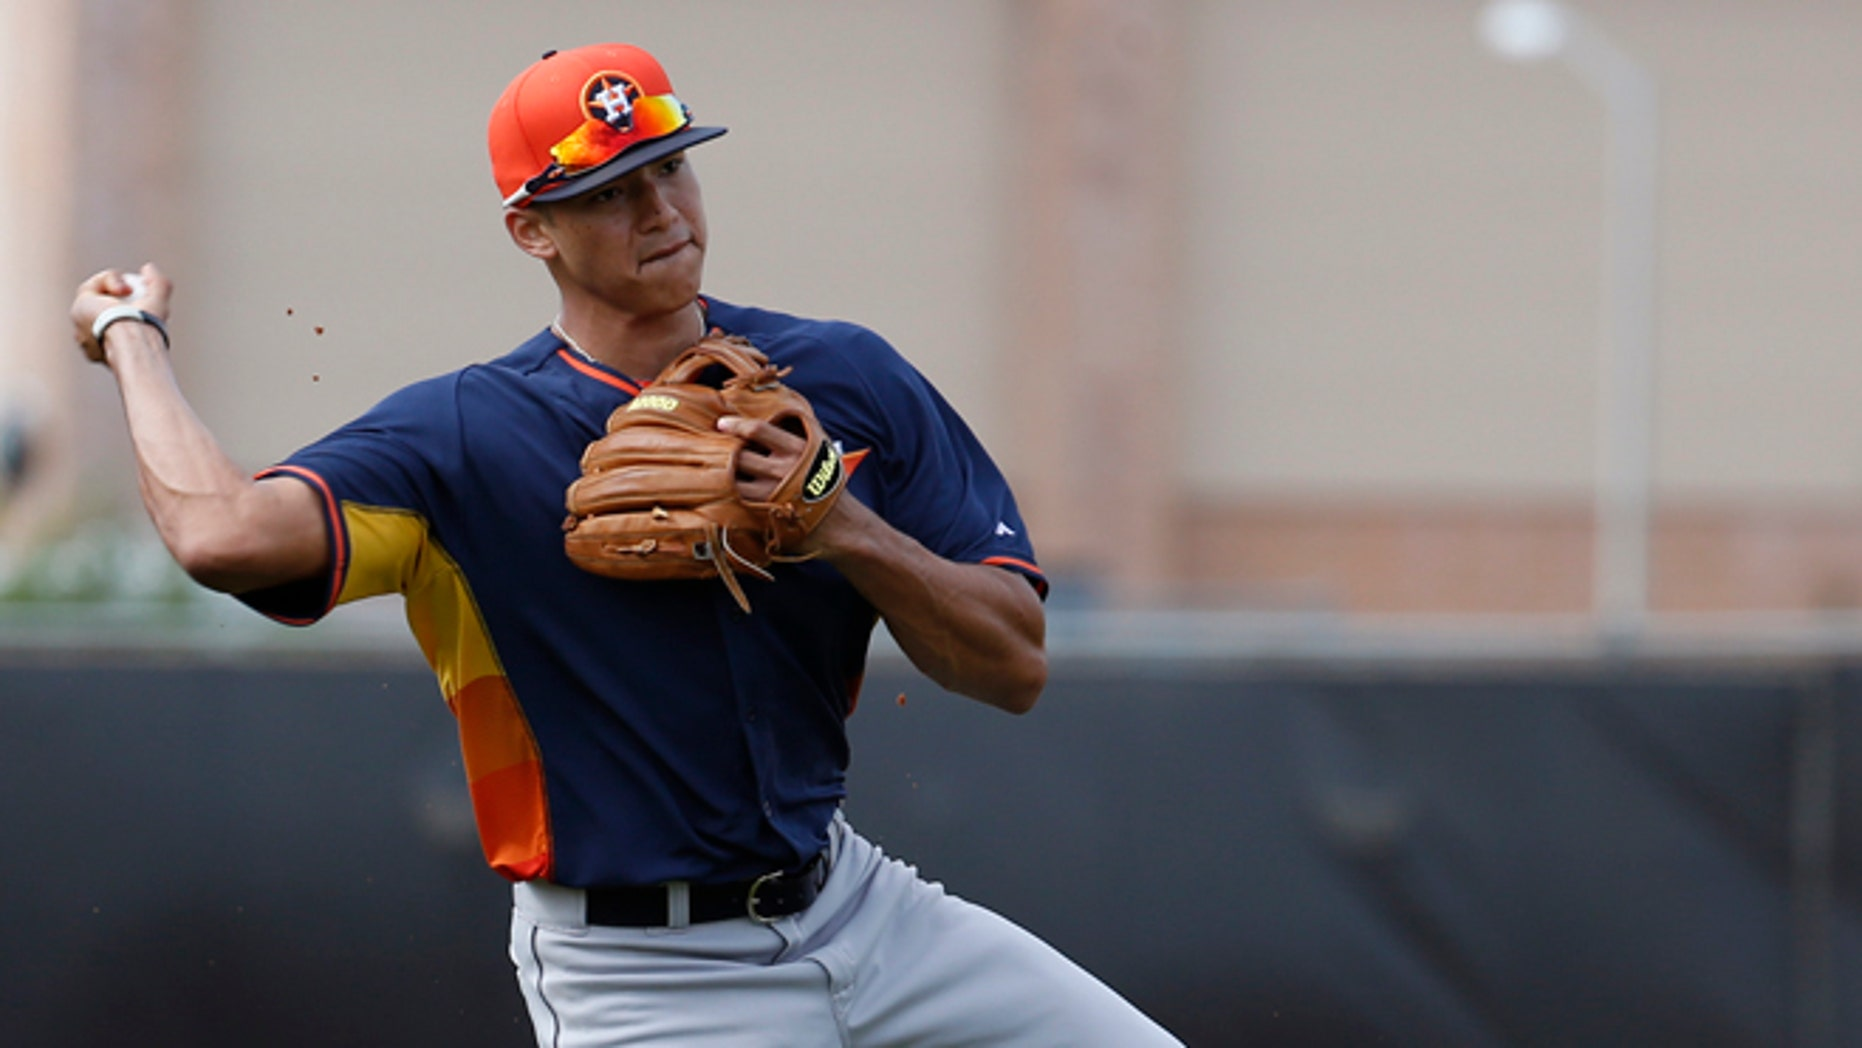 In this Feb. 21, 2014 file photo, Houston Astros' Carlos Correa throws the ball to first base during a spring training baseball workout in Kissimmee, Fla. Correa is one of the top prospects of the Astros, part of a group expected to turn around this once proud franchise and get fans back to the ballpark after three straight 100-loss seasons.  (AP Photo/Alex Brandon, File)